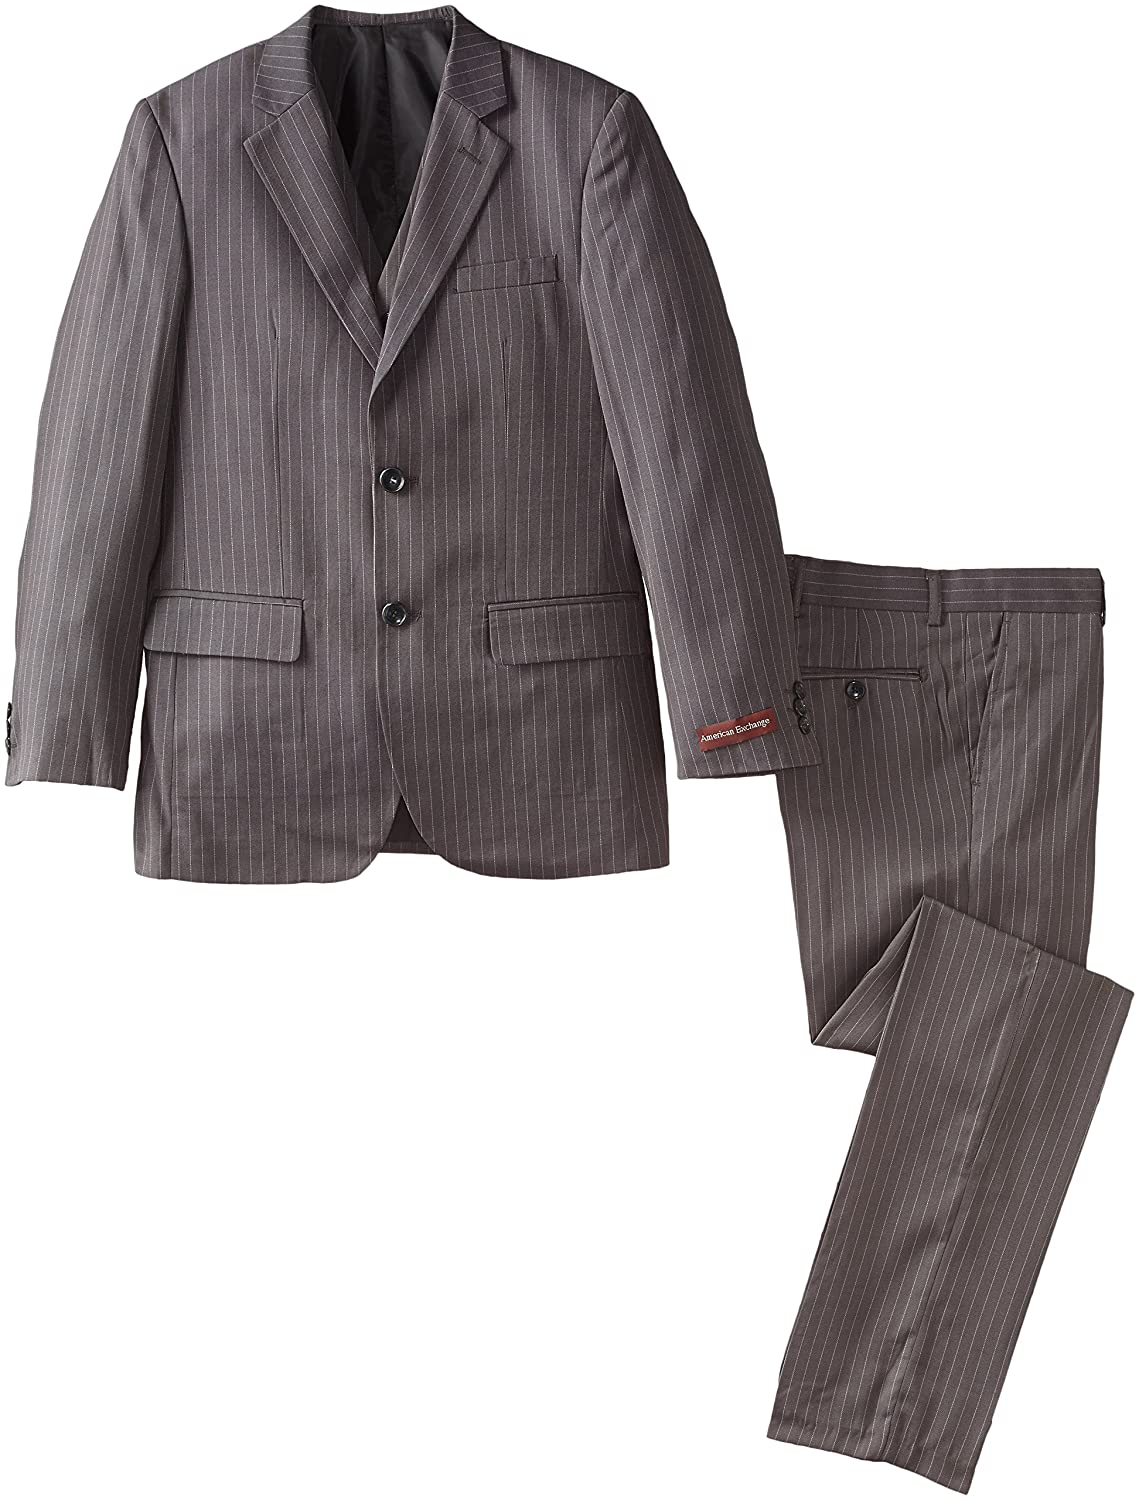 American Exchange Big Boys Three-Piece Tailored-Fit Striped Suit Set American Exchange Boys 8-20 AE 123B